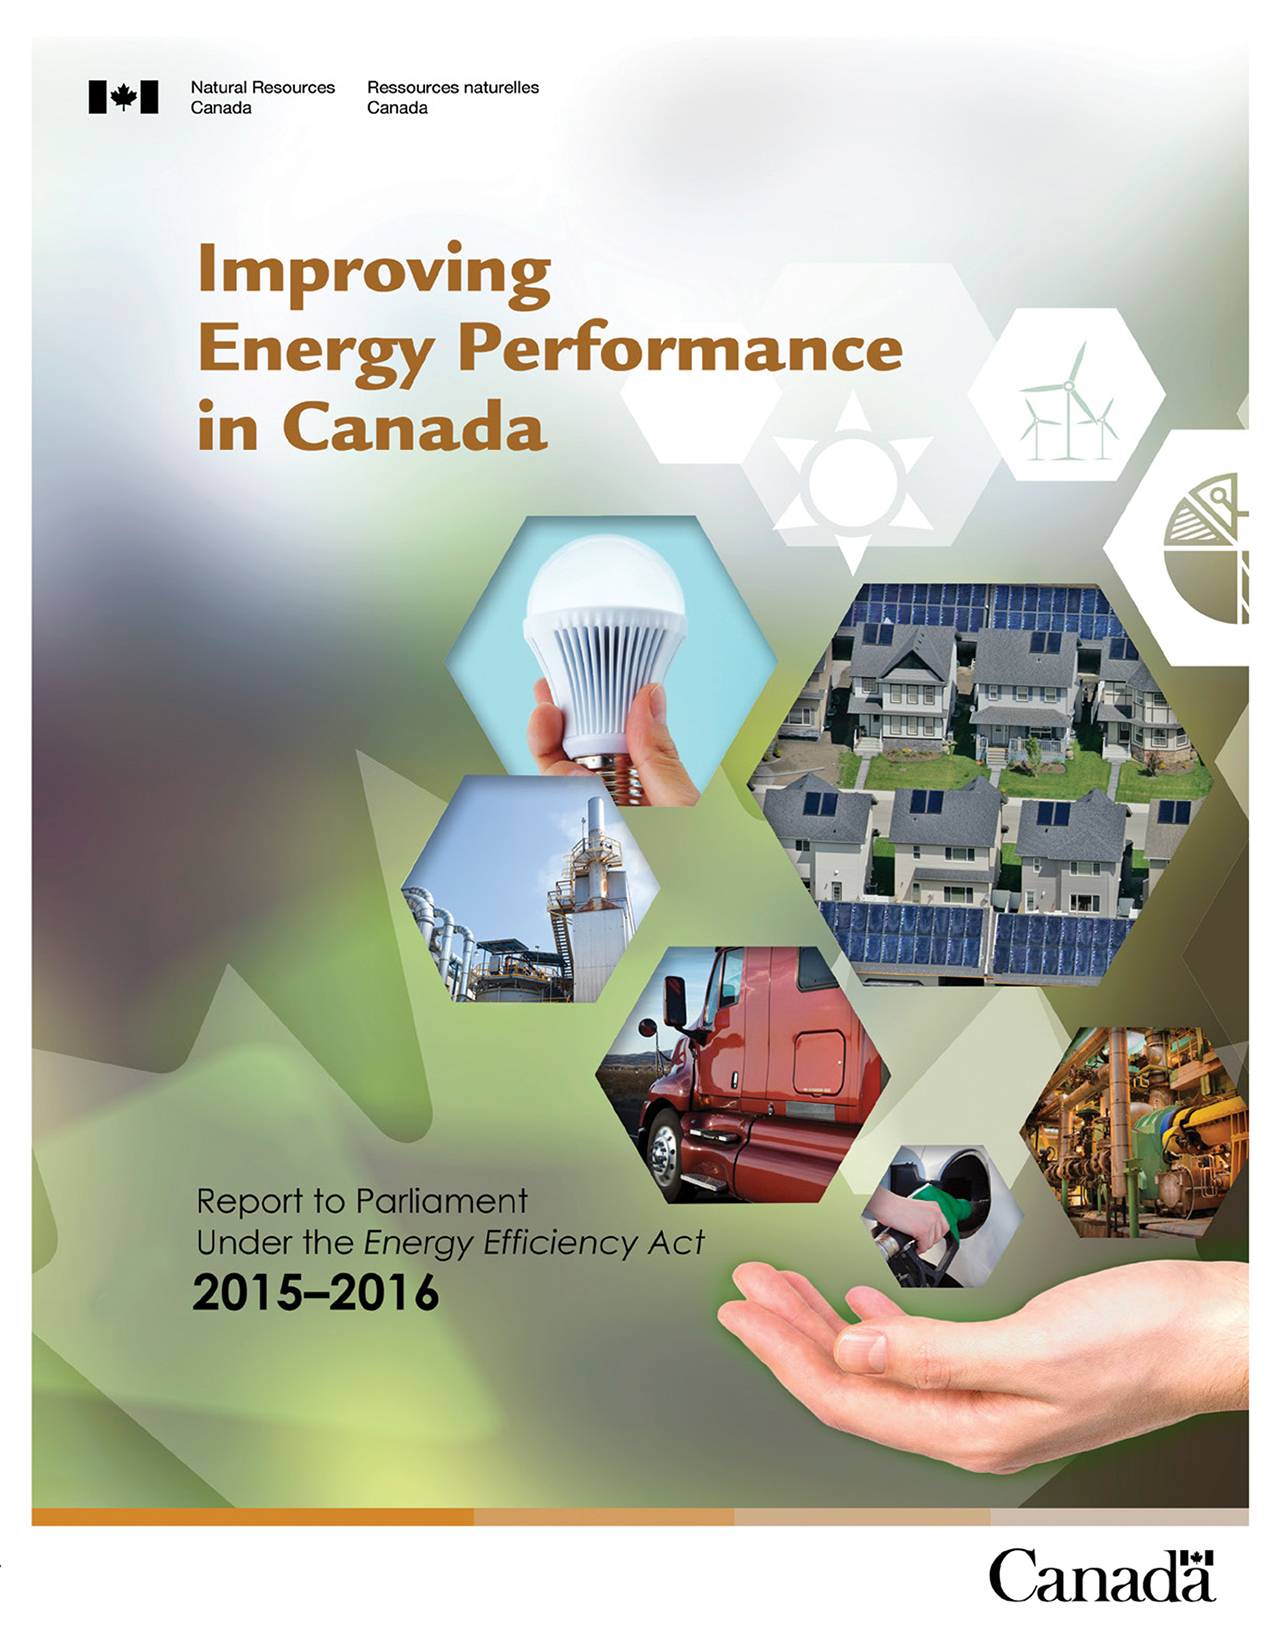 IMPROVING ENERGY PERFORMANCE IN CANADA: REPORT TO PARLIAMENT UNDER THE ENERGY EFFICIENCY ACT, 2013-2015